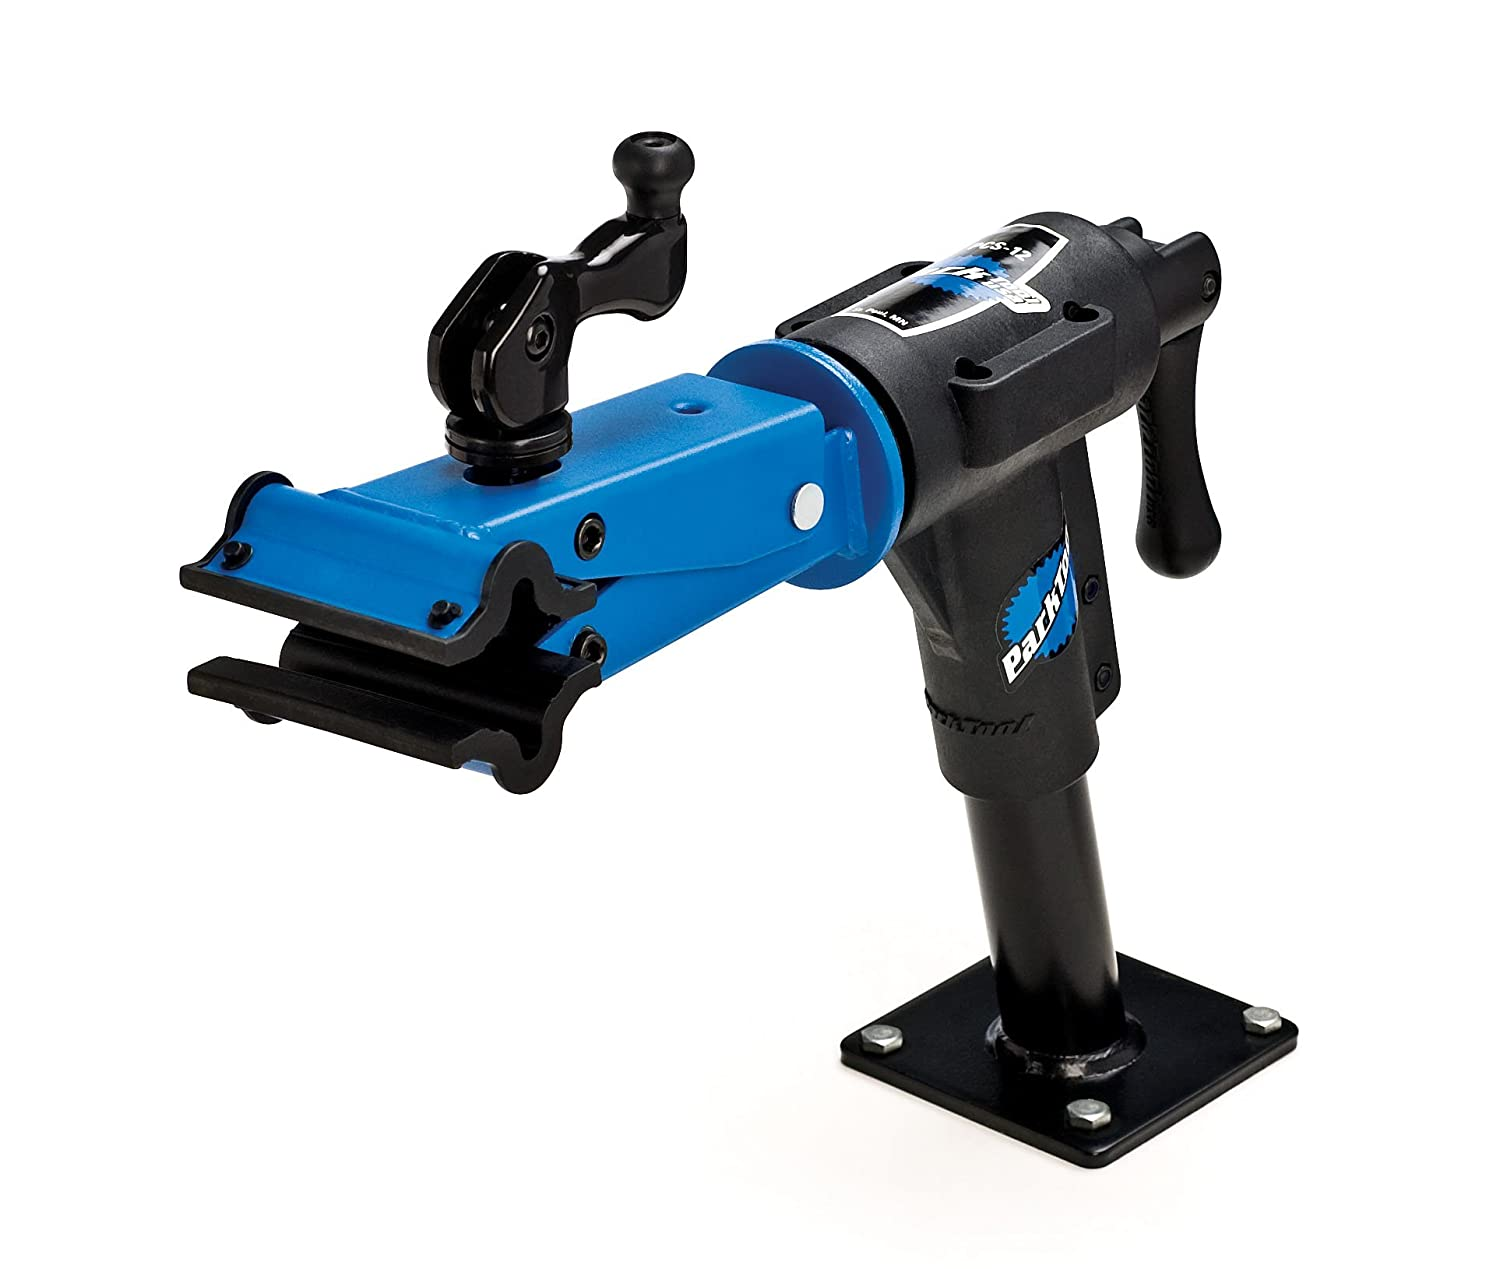 Amazon Park Tool PCS 12 Home Mechanic Bench Mount Repair Stand Bike Workstands Sports Outdoors